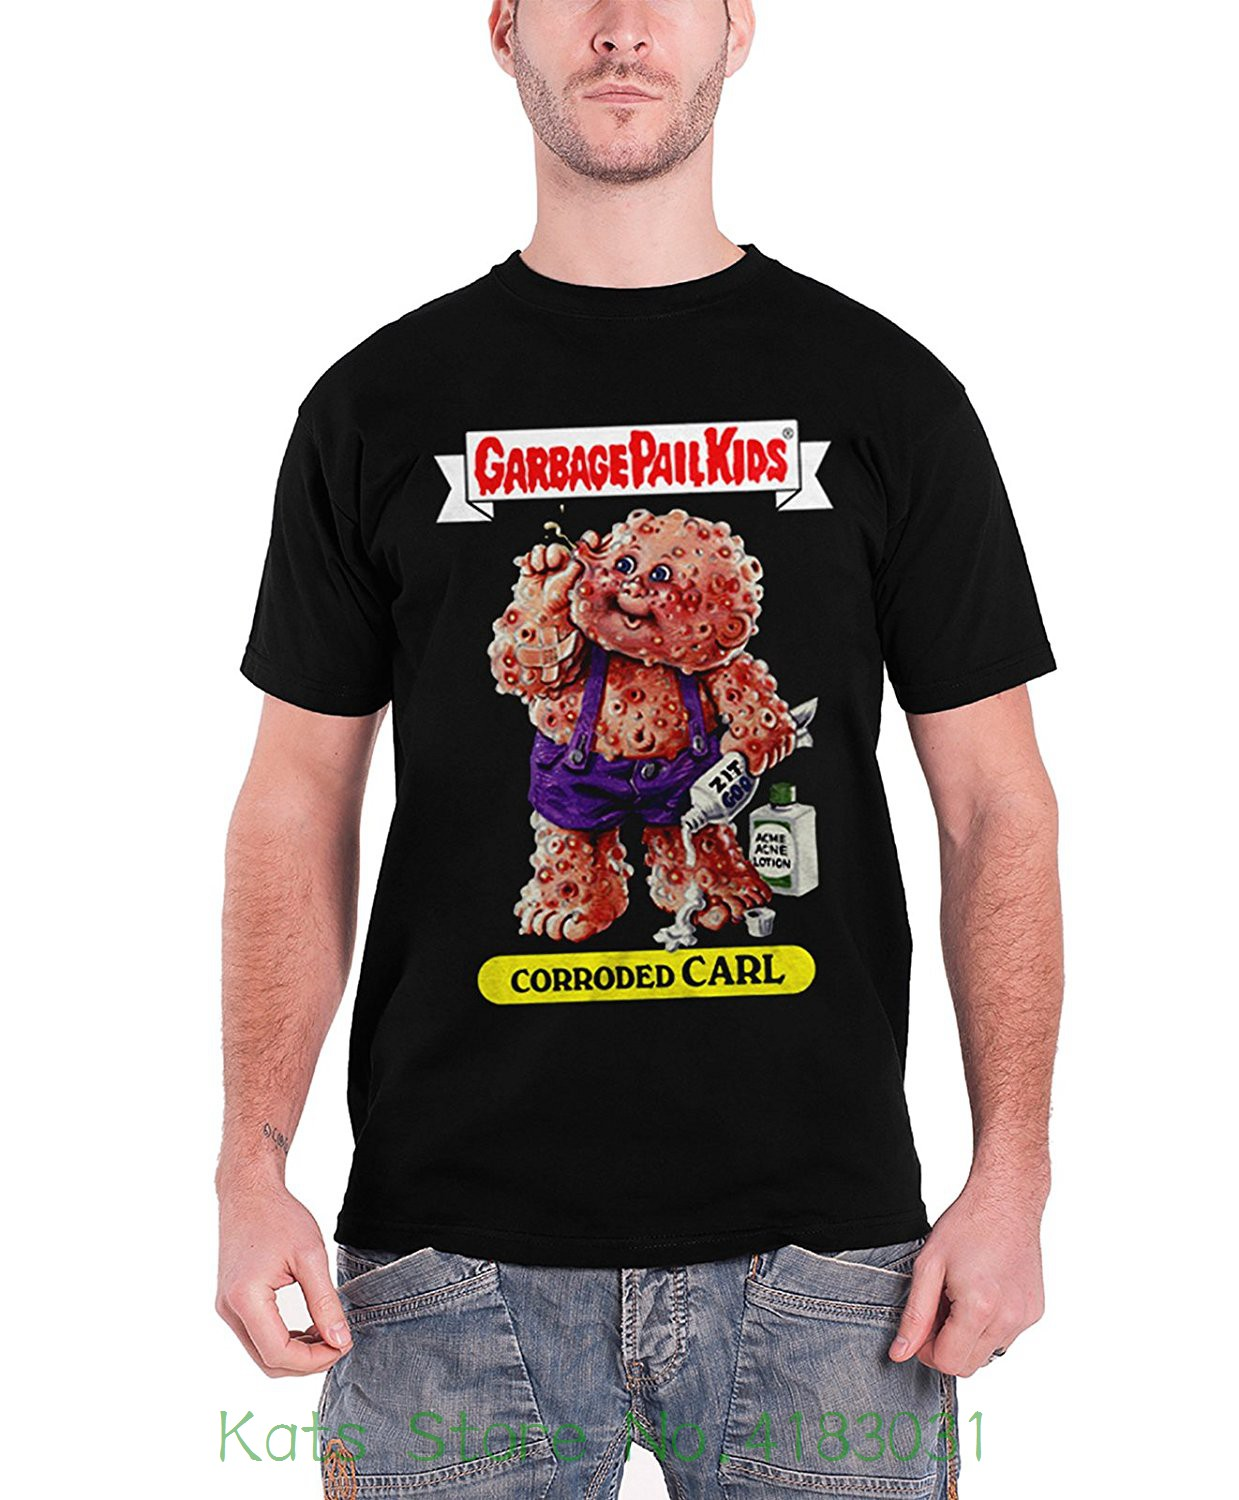 Garbage Pail Kids Officially Licensed Merchandise Corroded Carl T-shirt ( Black ) Cotton Loose Short Sleeve Mens Shirts